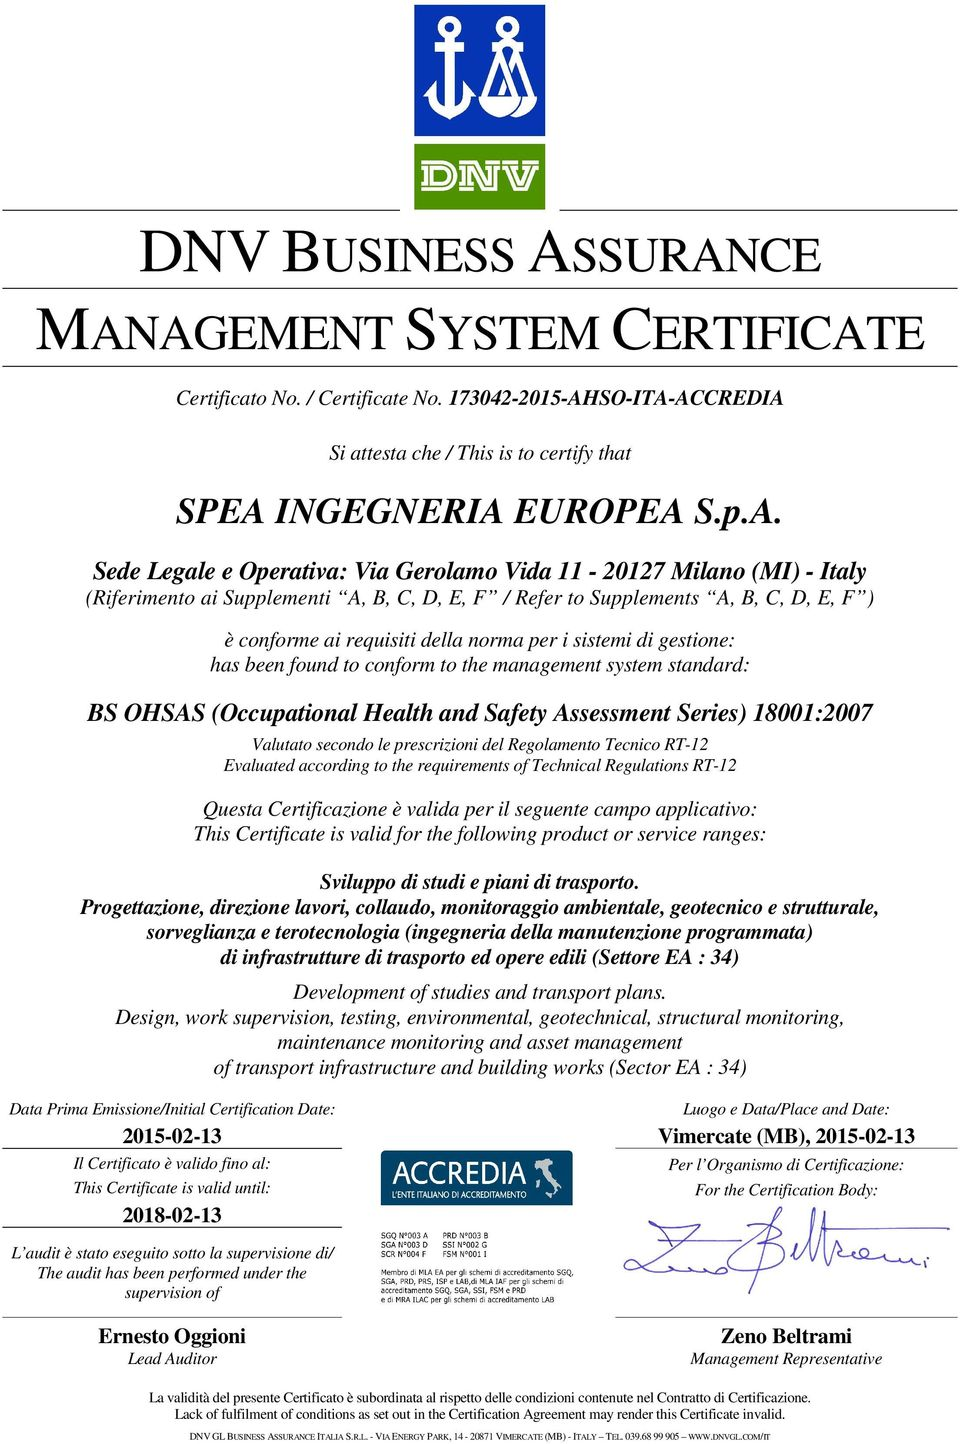 ACCREDIA Si attesta che / This is to certify that SPEA INGEGNERIA EUROPEA S.p.A. Sede Legale e Operativa: Via Gerolamo Vida 11-20127 Milano (MI) - Italy (Riferimento ai Supplementi A, B, C, D, E, F /